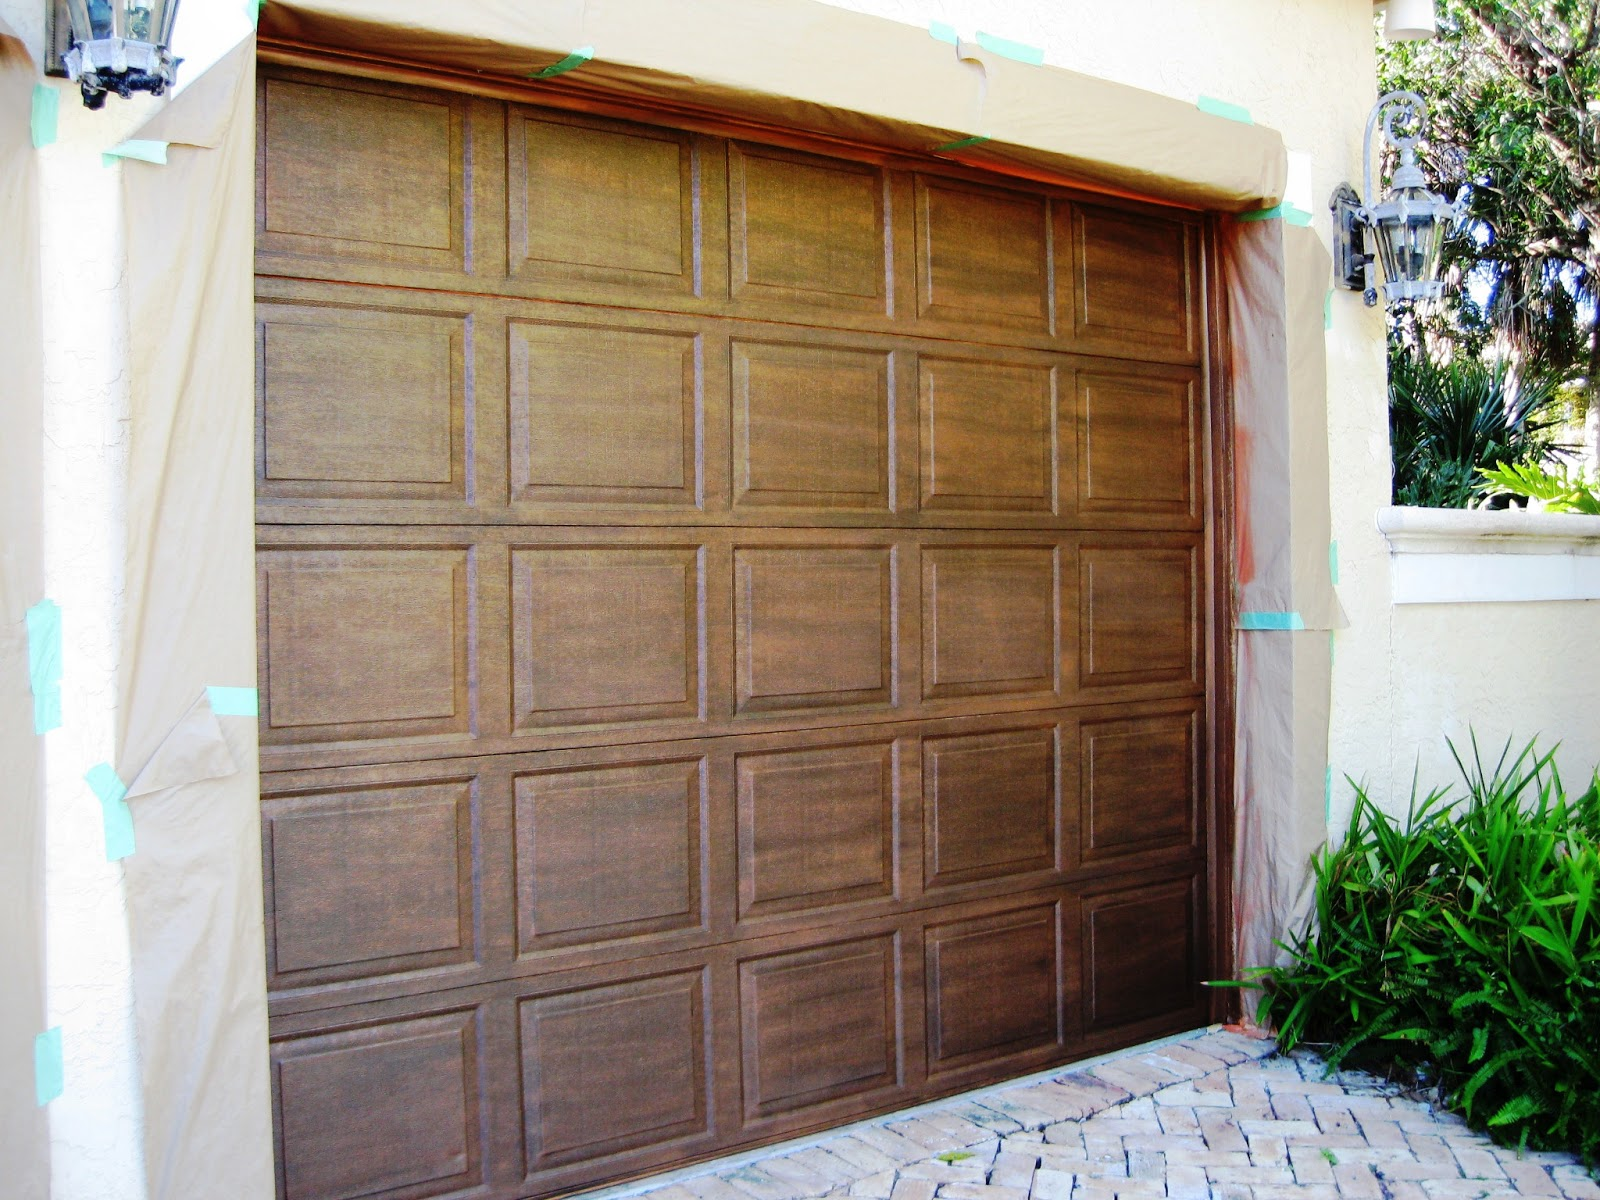 1200 #2B6F22 Garage Door Paint Ideas There Are So Many Colors To pic Garage Doors Colors 37511600